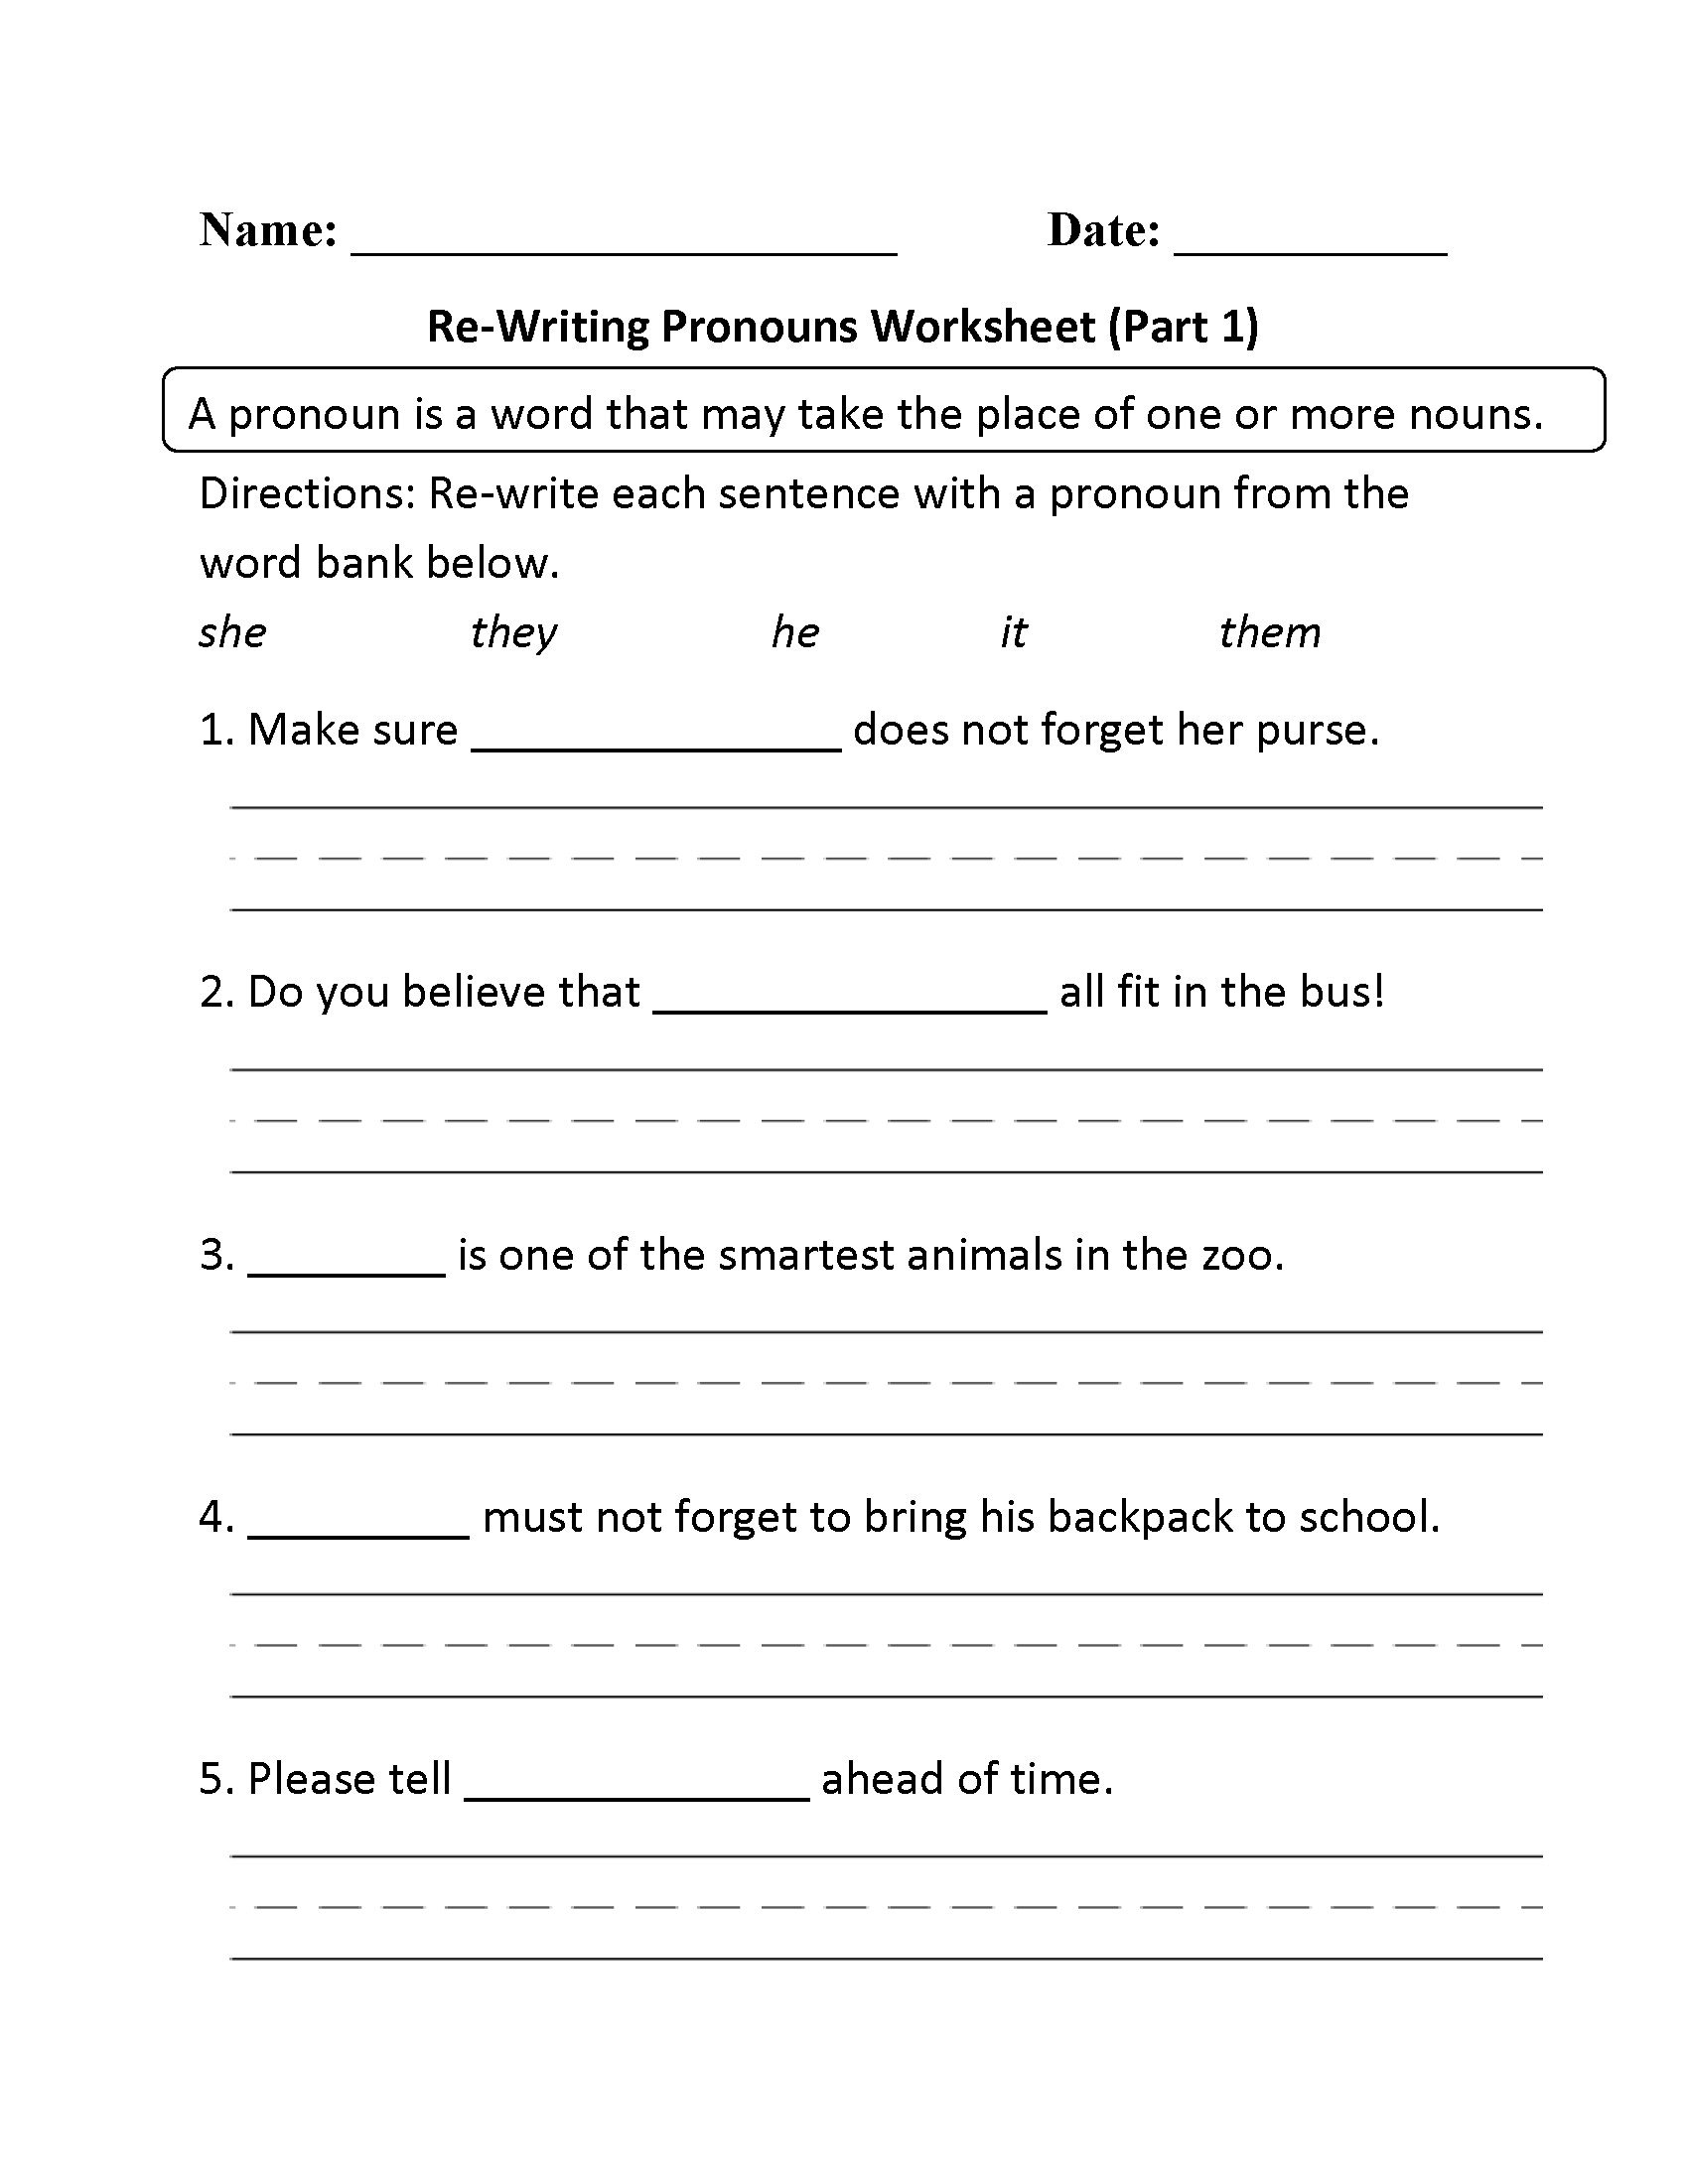 pronouns worksheets regular pronouns worksheets free printable pronoun worksheets for 2nd grade